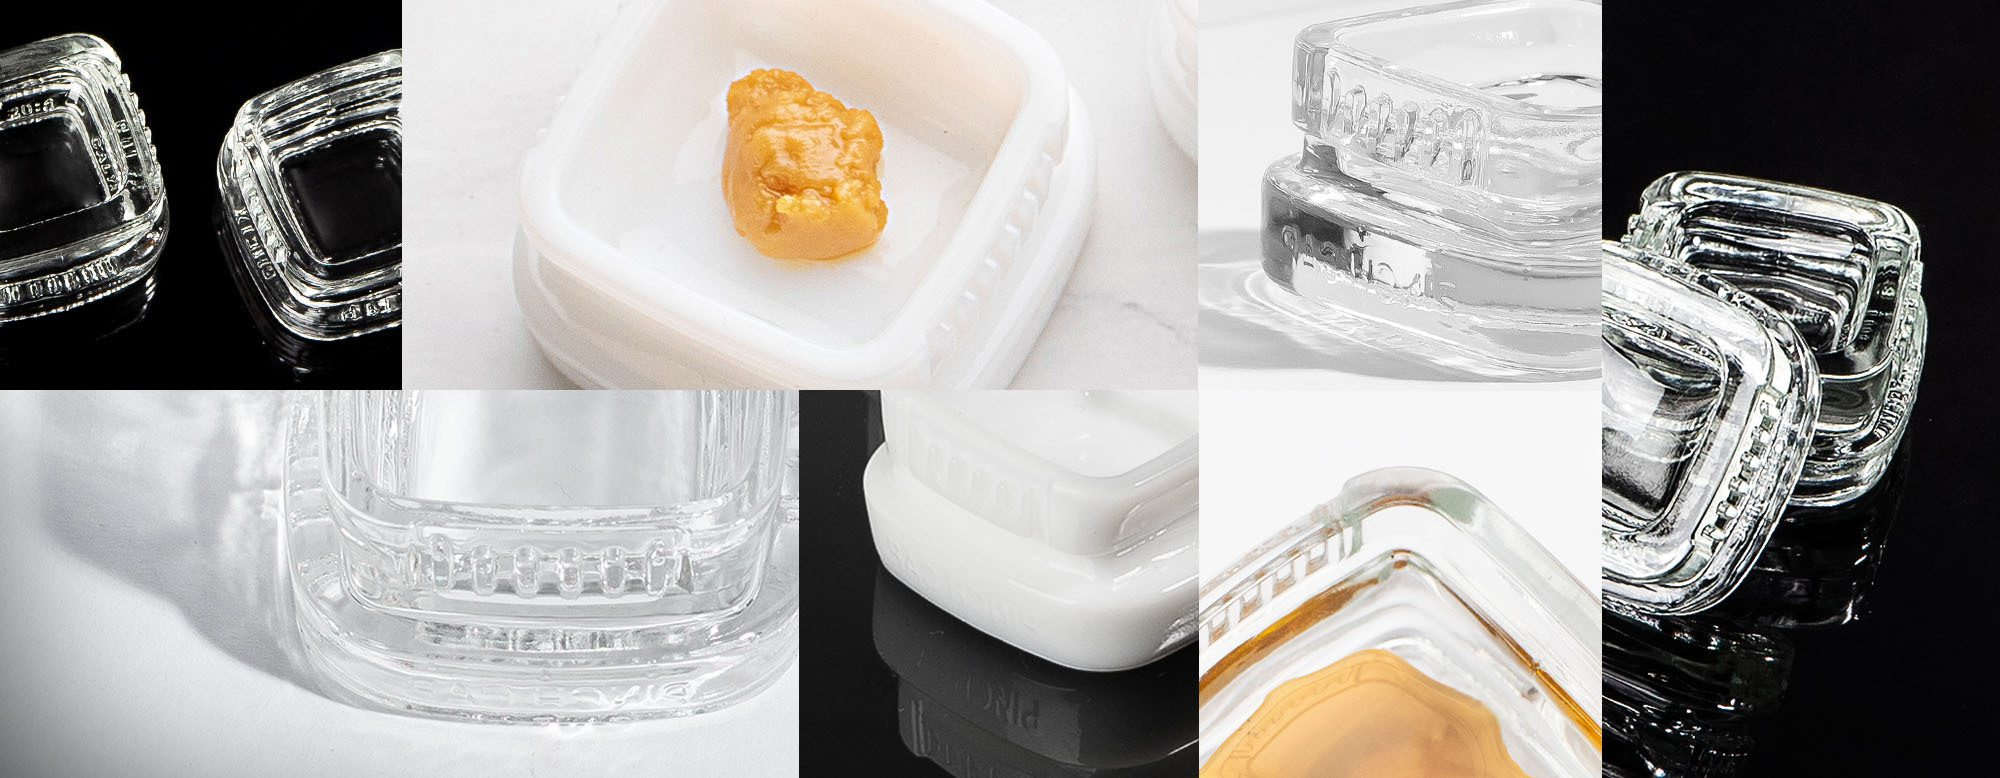 Calyx Concentrate Containers Collage v4